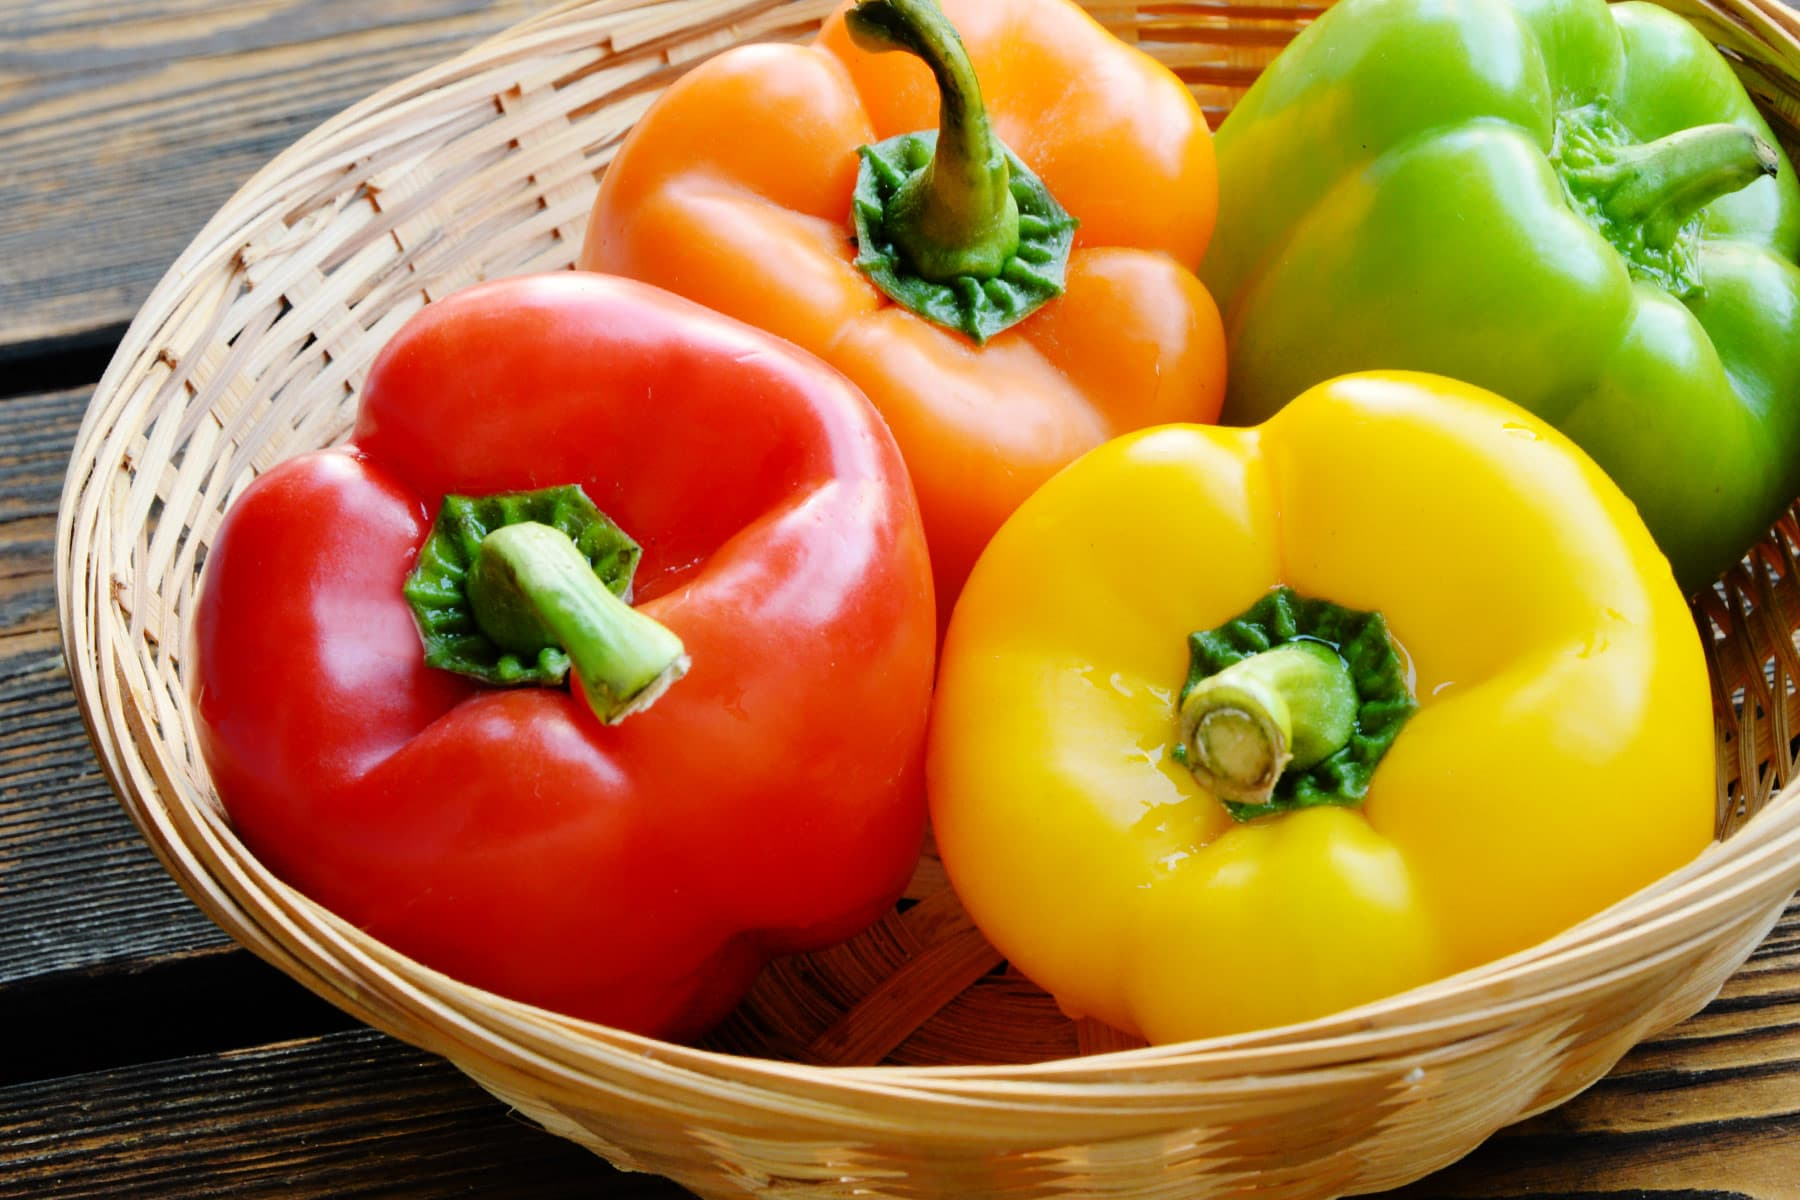 Eating Peppers Ingredients Benefits And Prep Tips